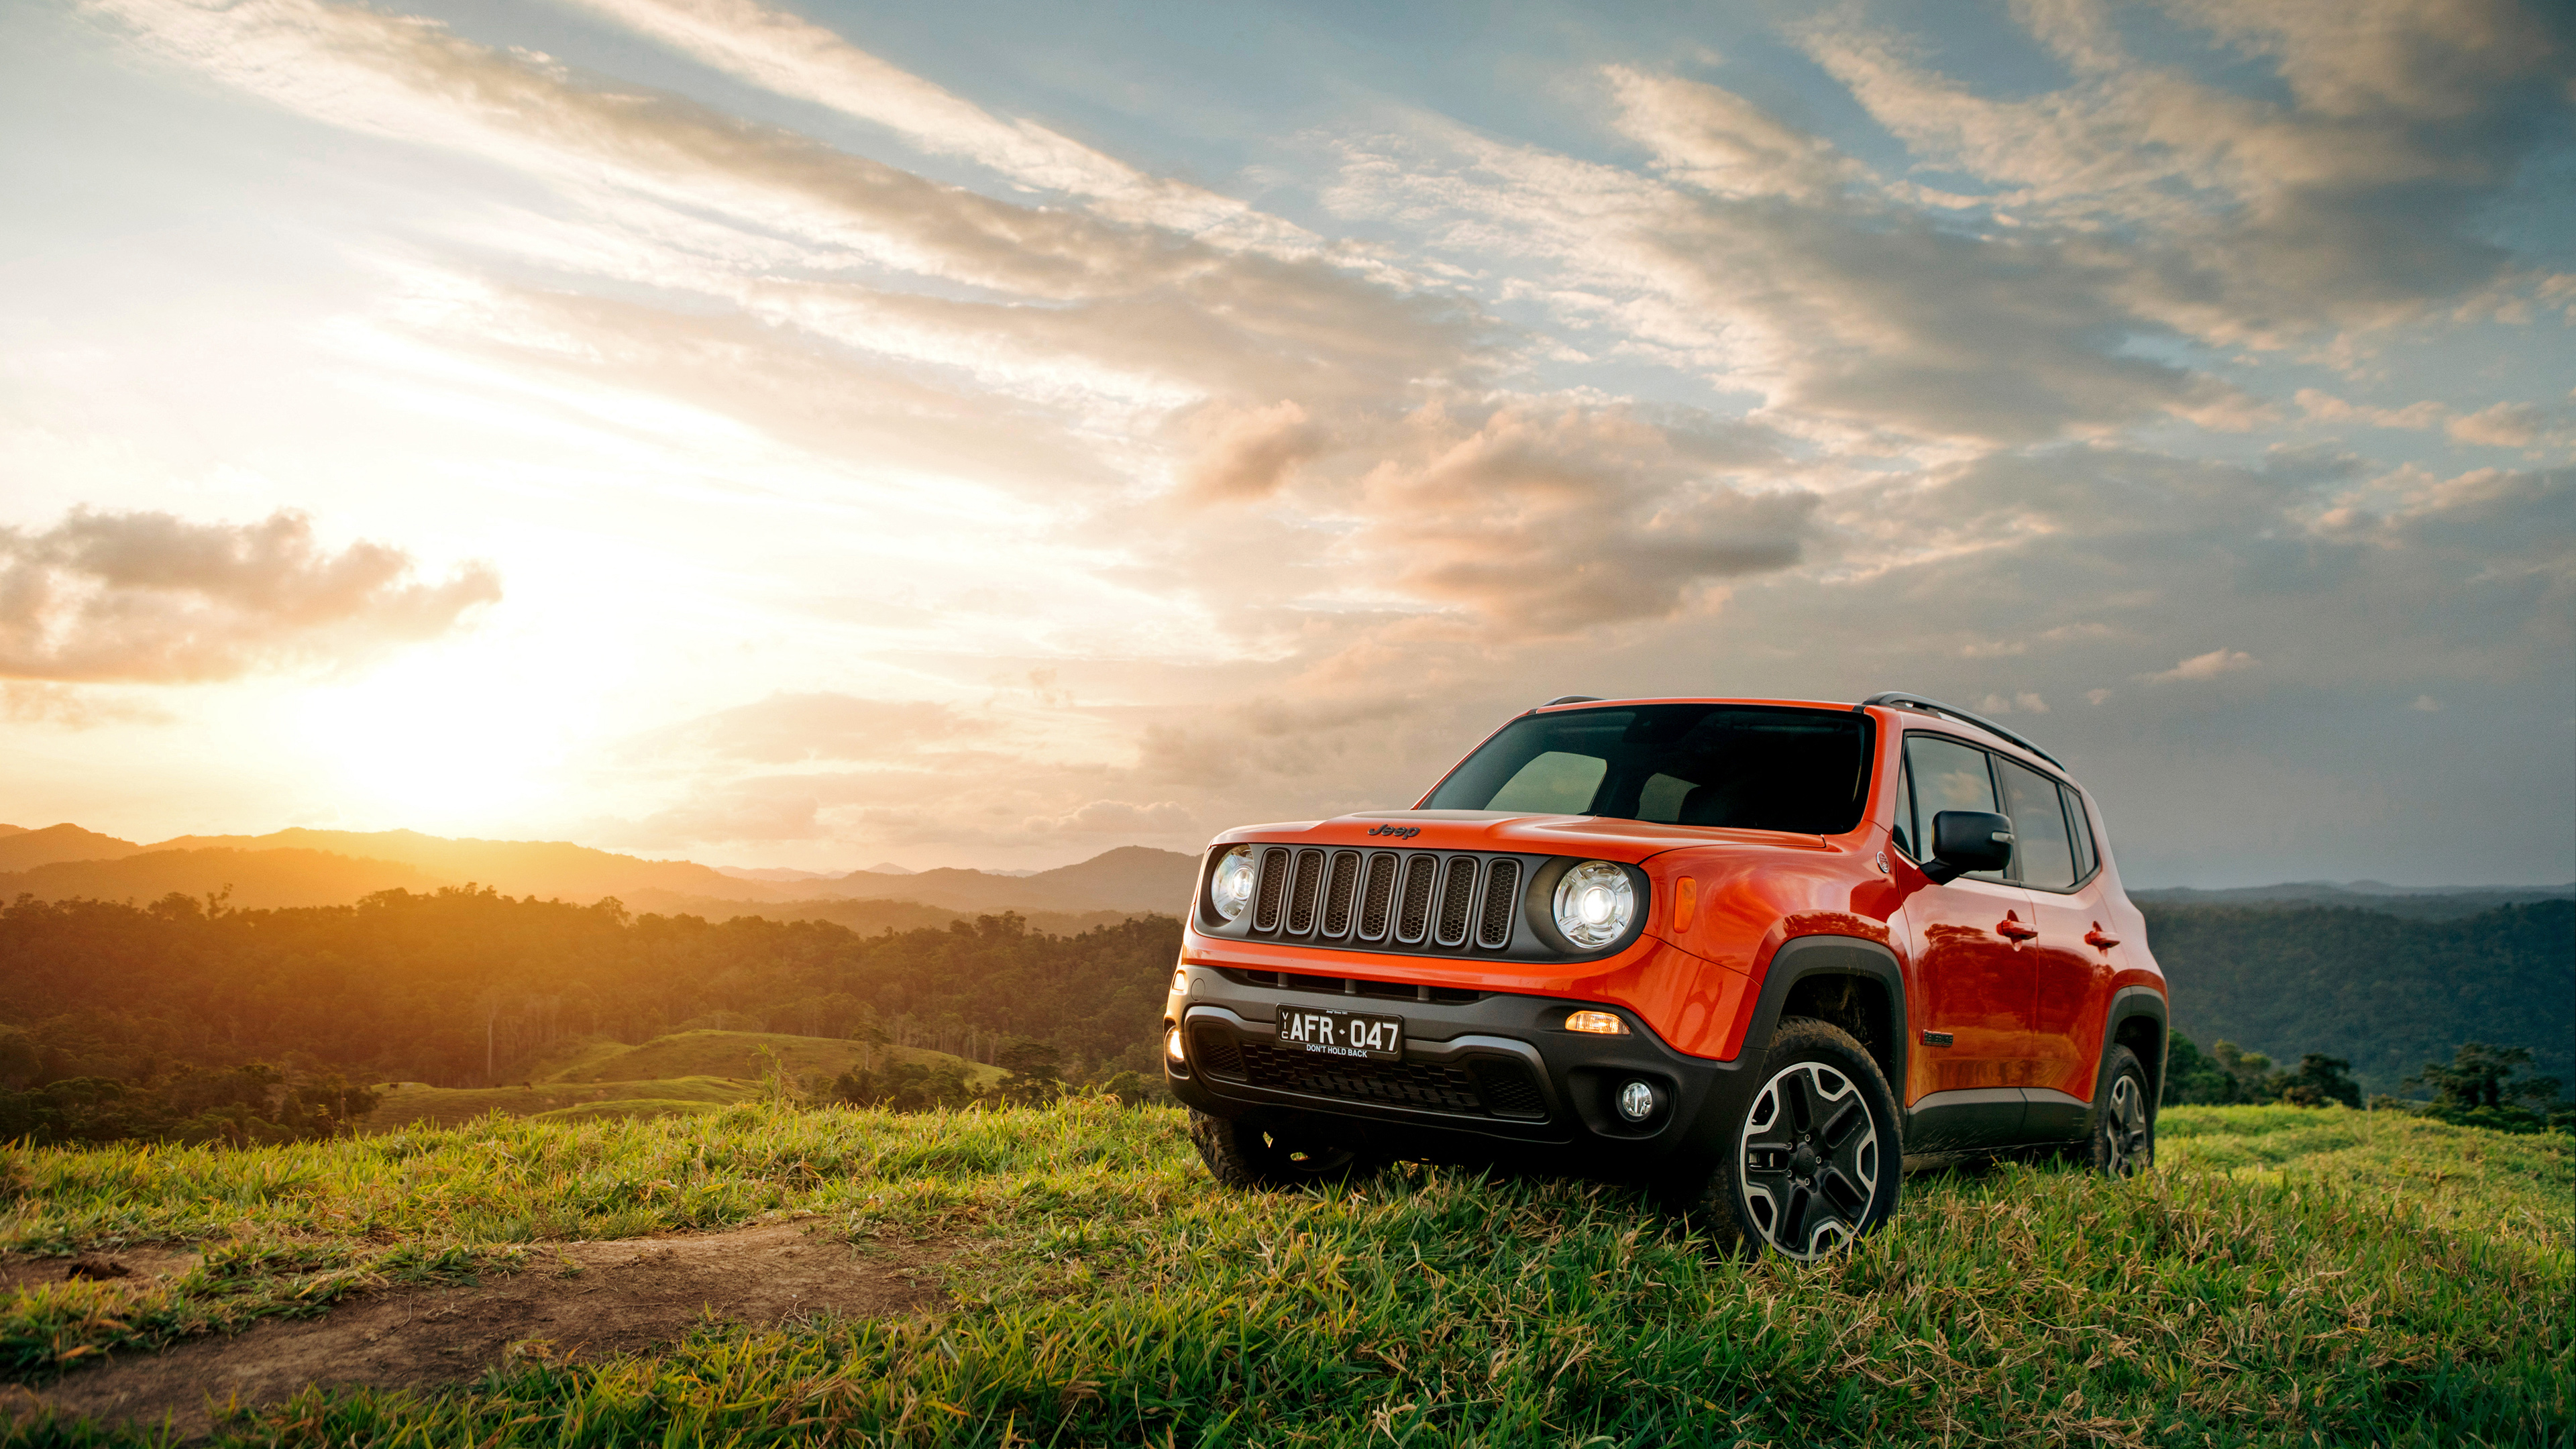 Jeep Car Images Hd: Jeep Renegade Hells Revenge Wallpaper